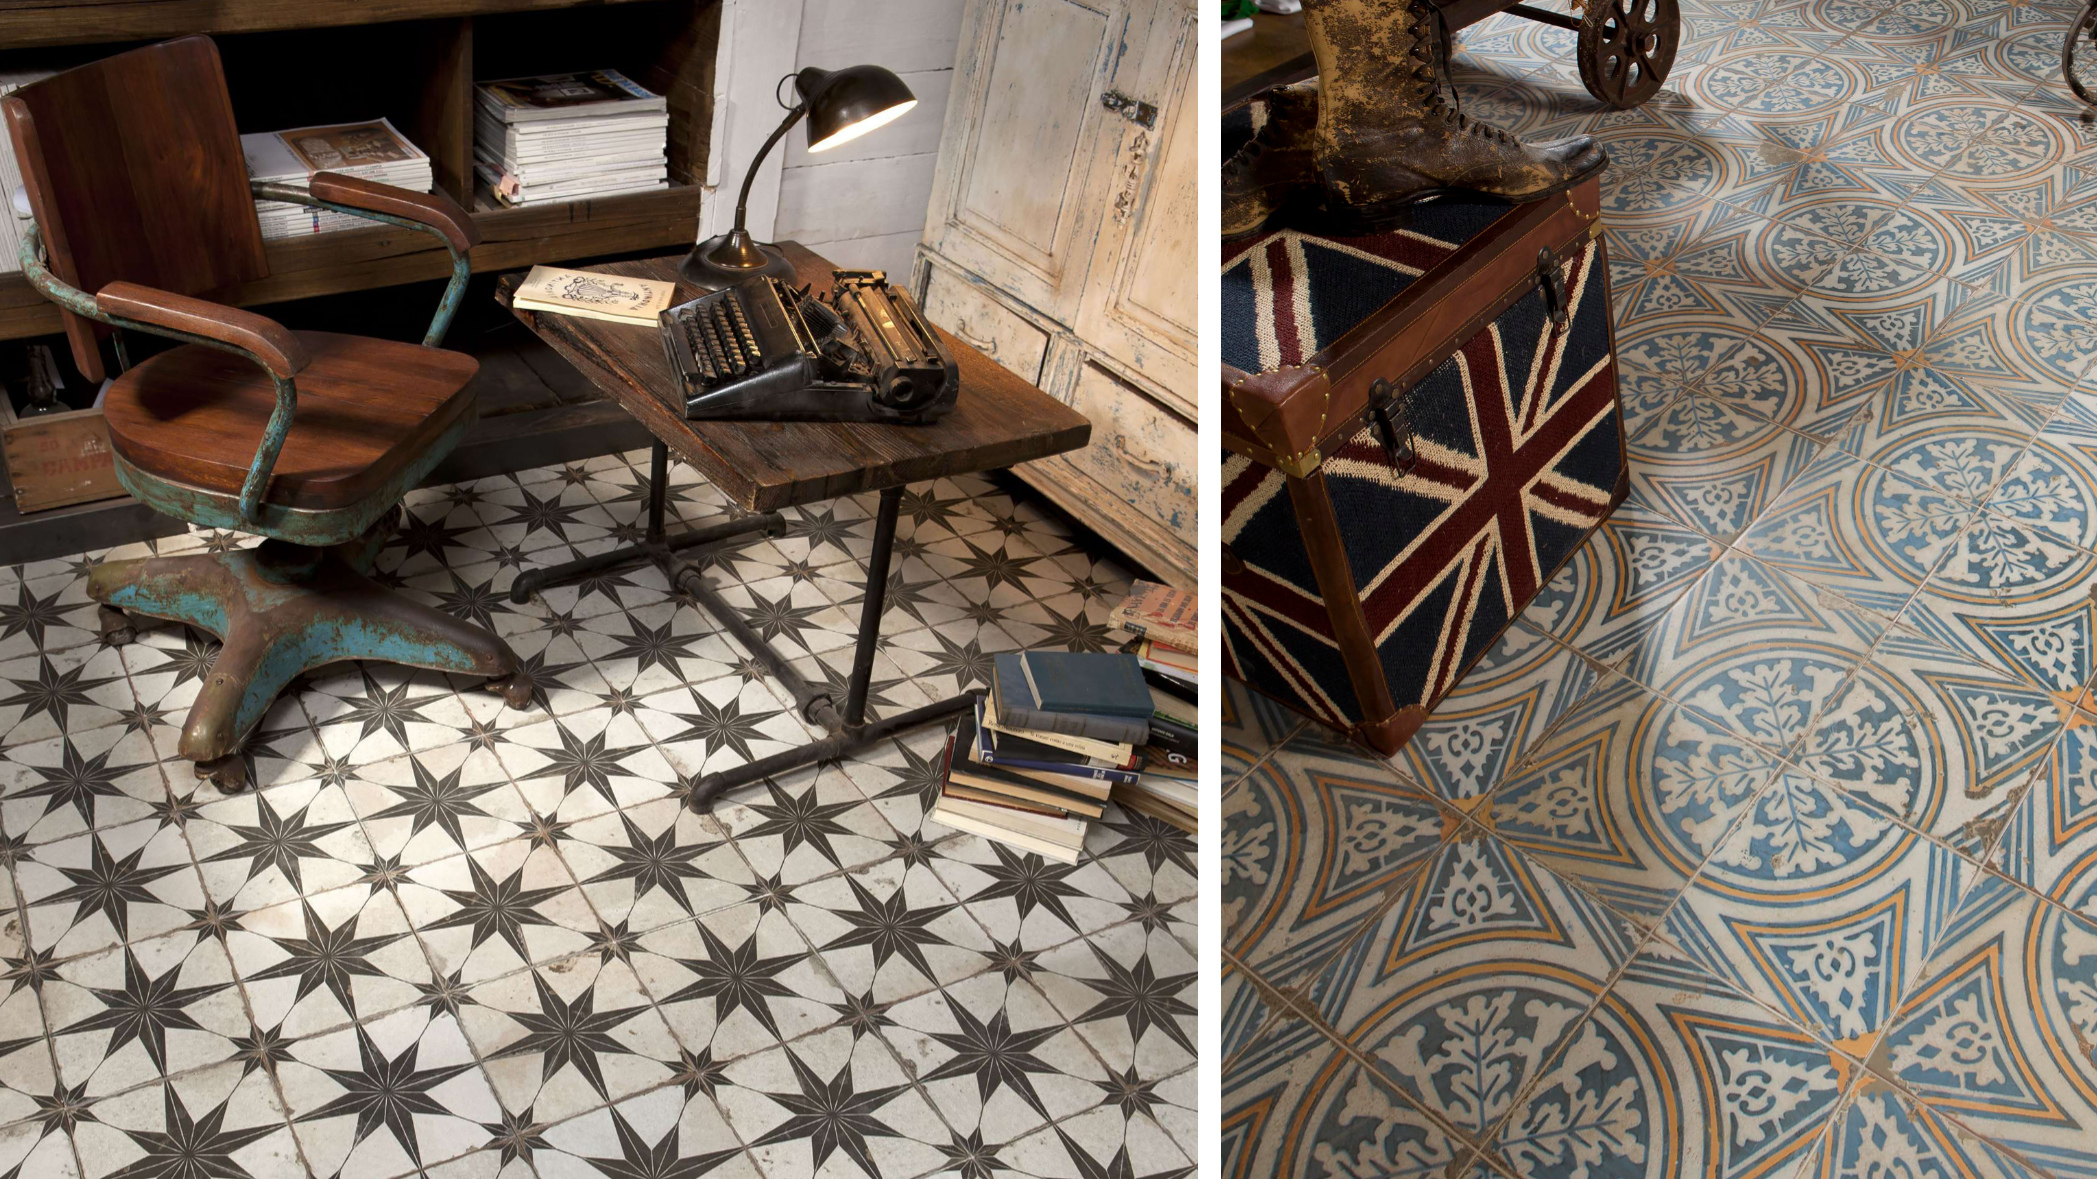 New Floor Tiles With Old World Flair Fine Homebuilding